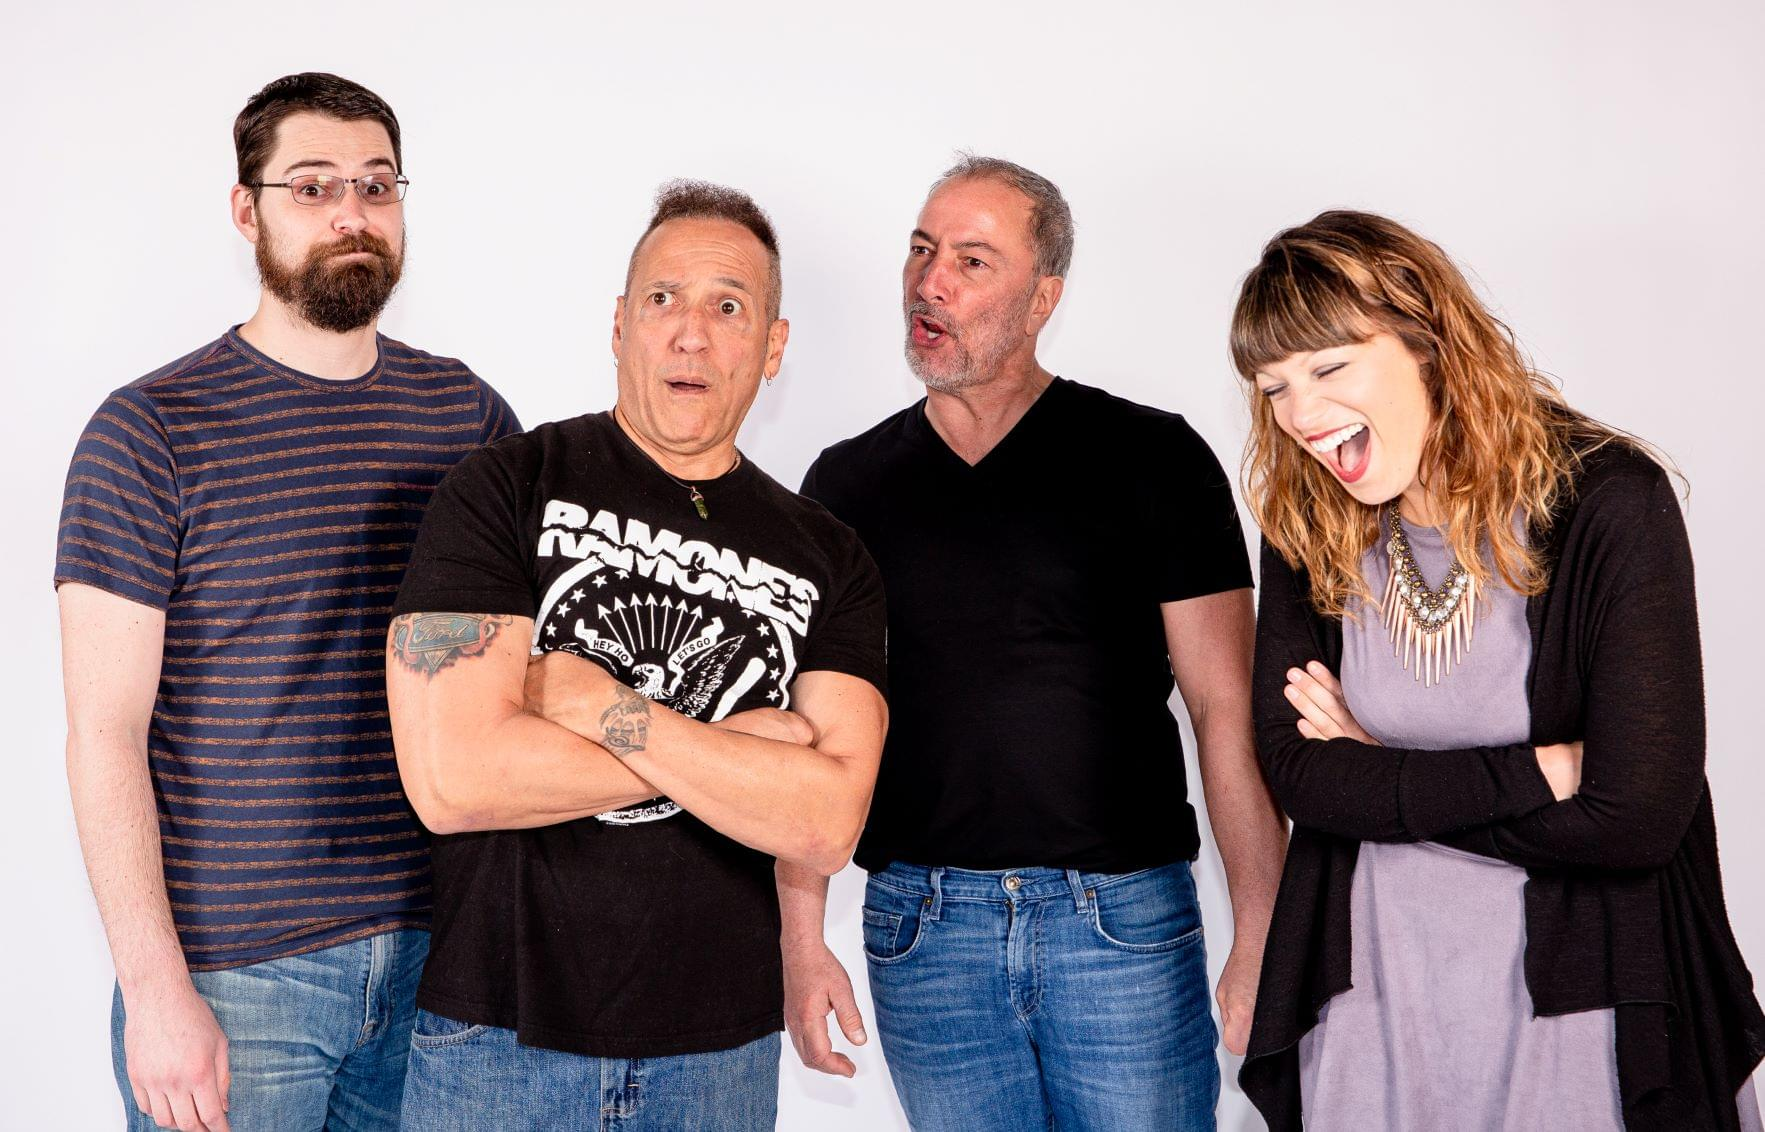 PODCAST – Thursday, June 27: Gilbert Gottfried, Concert Stories, And Ashley Goes Off The Rails